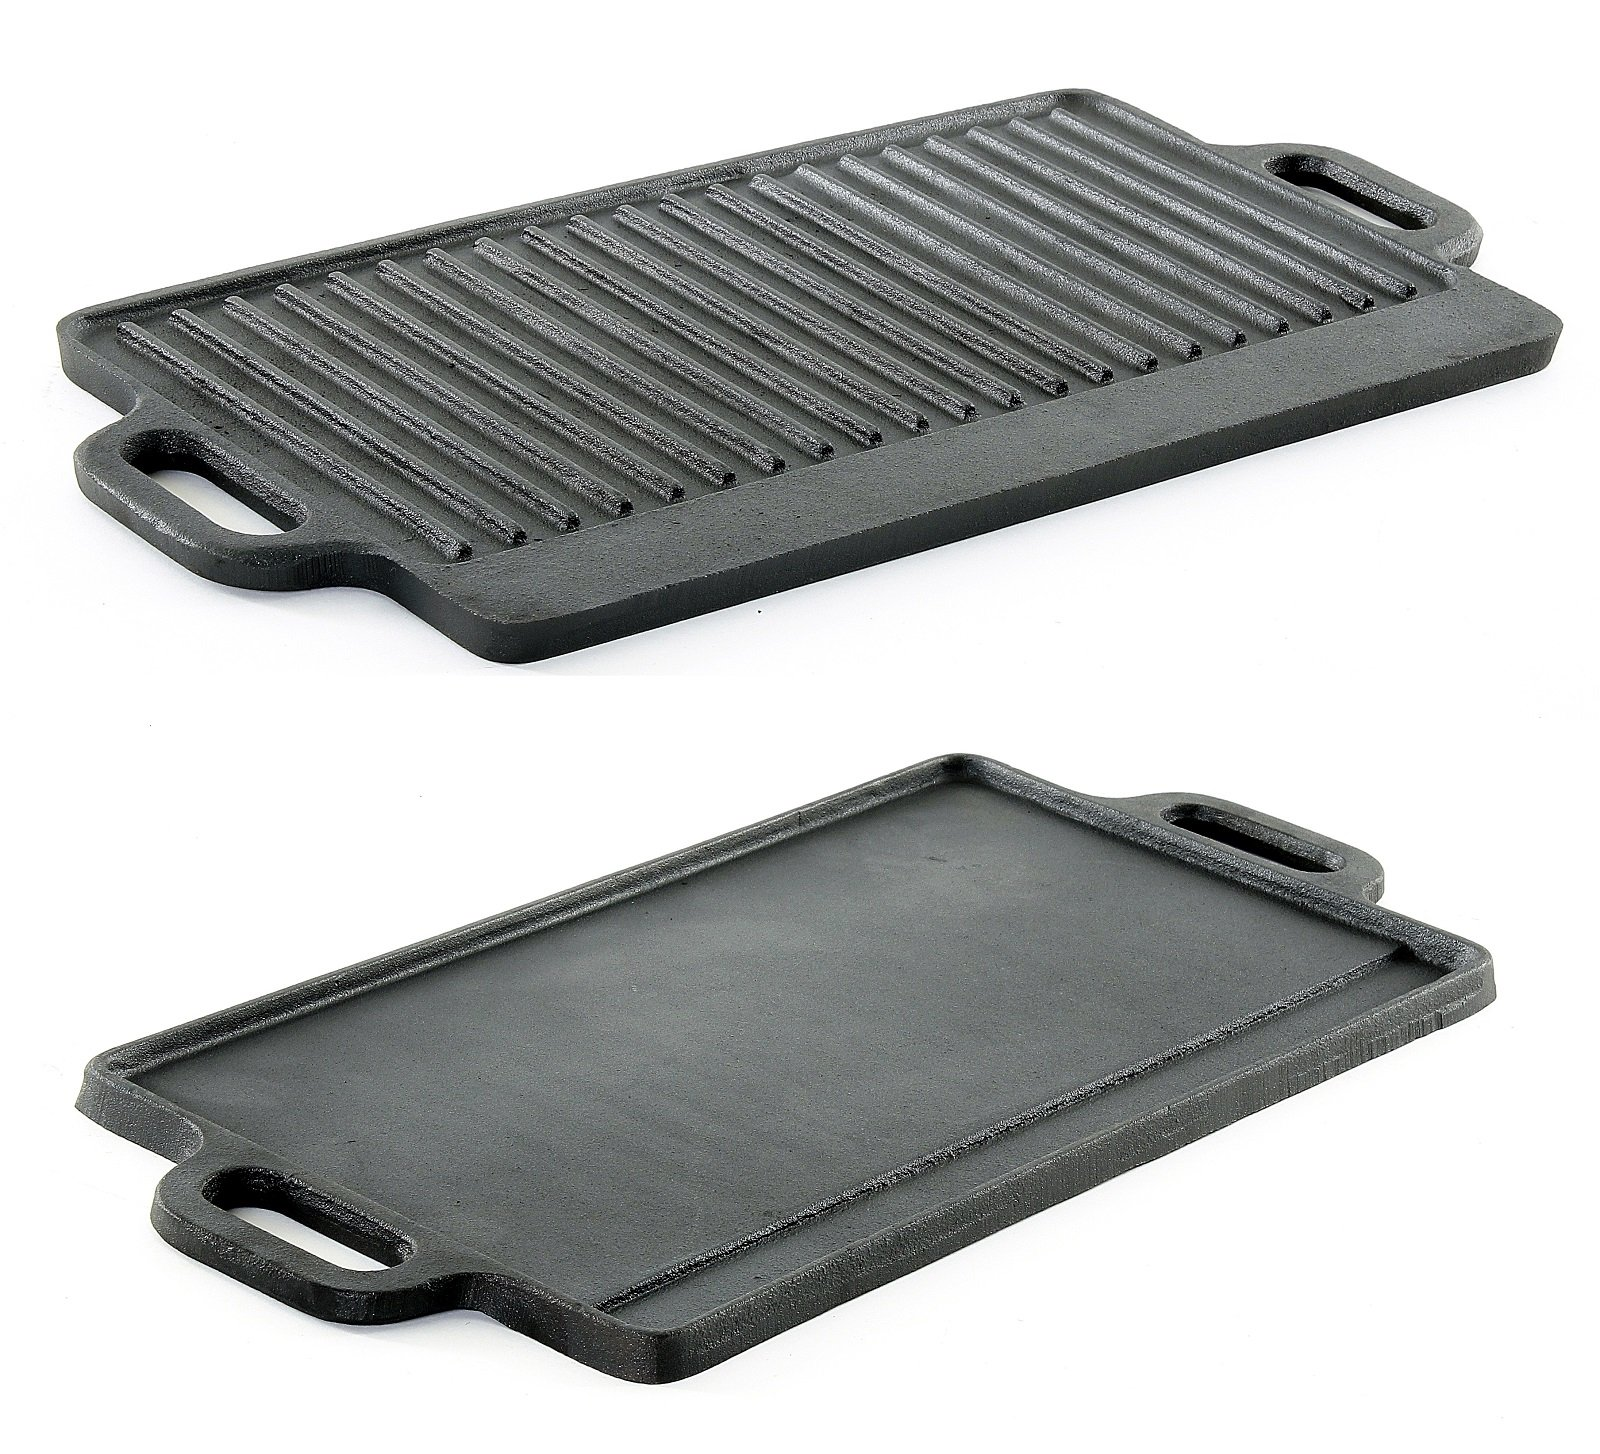 ProSource Professional Heavy Duty Reversible Double Burner Cast Iron Grill Griddle, Black